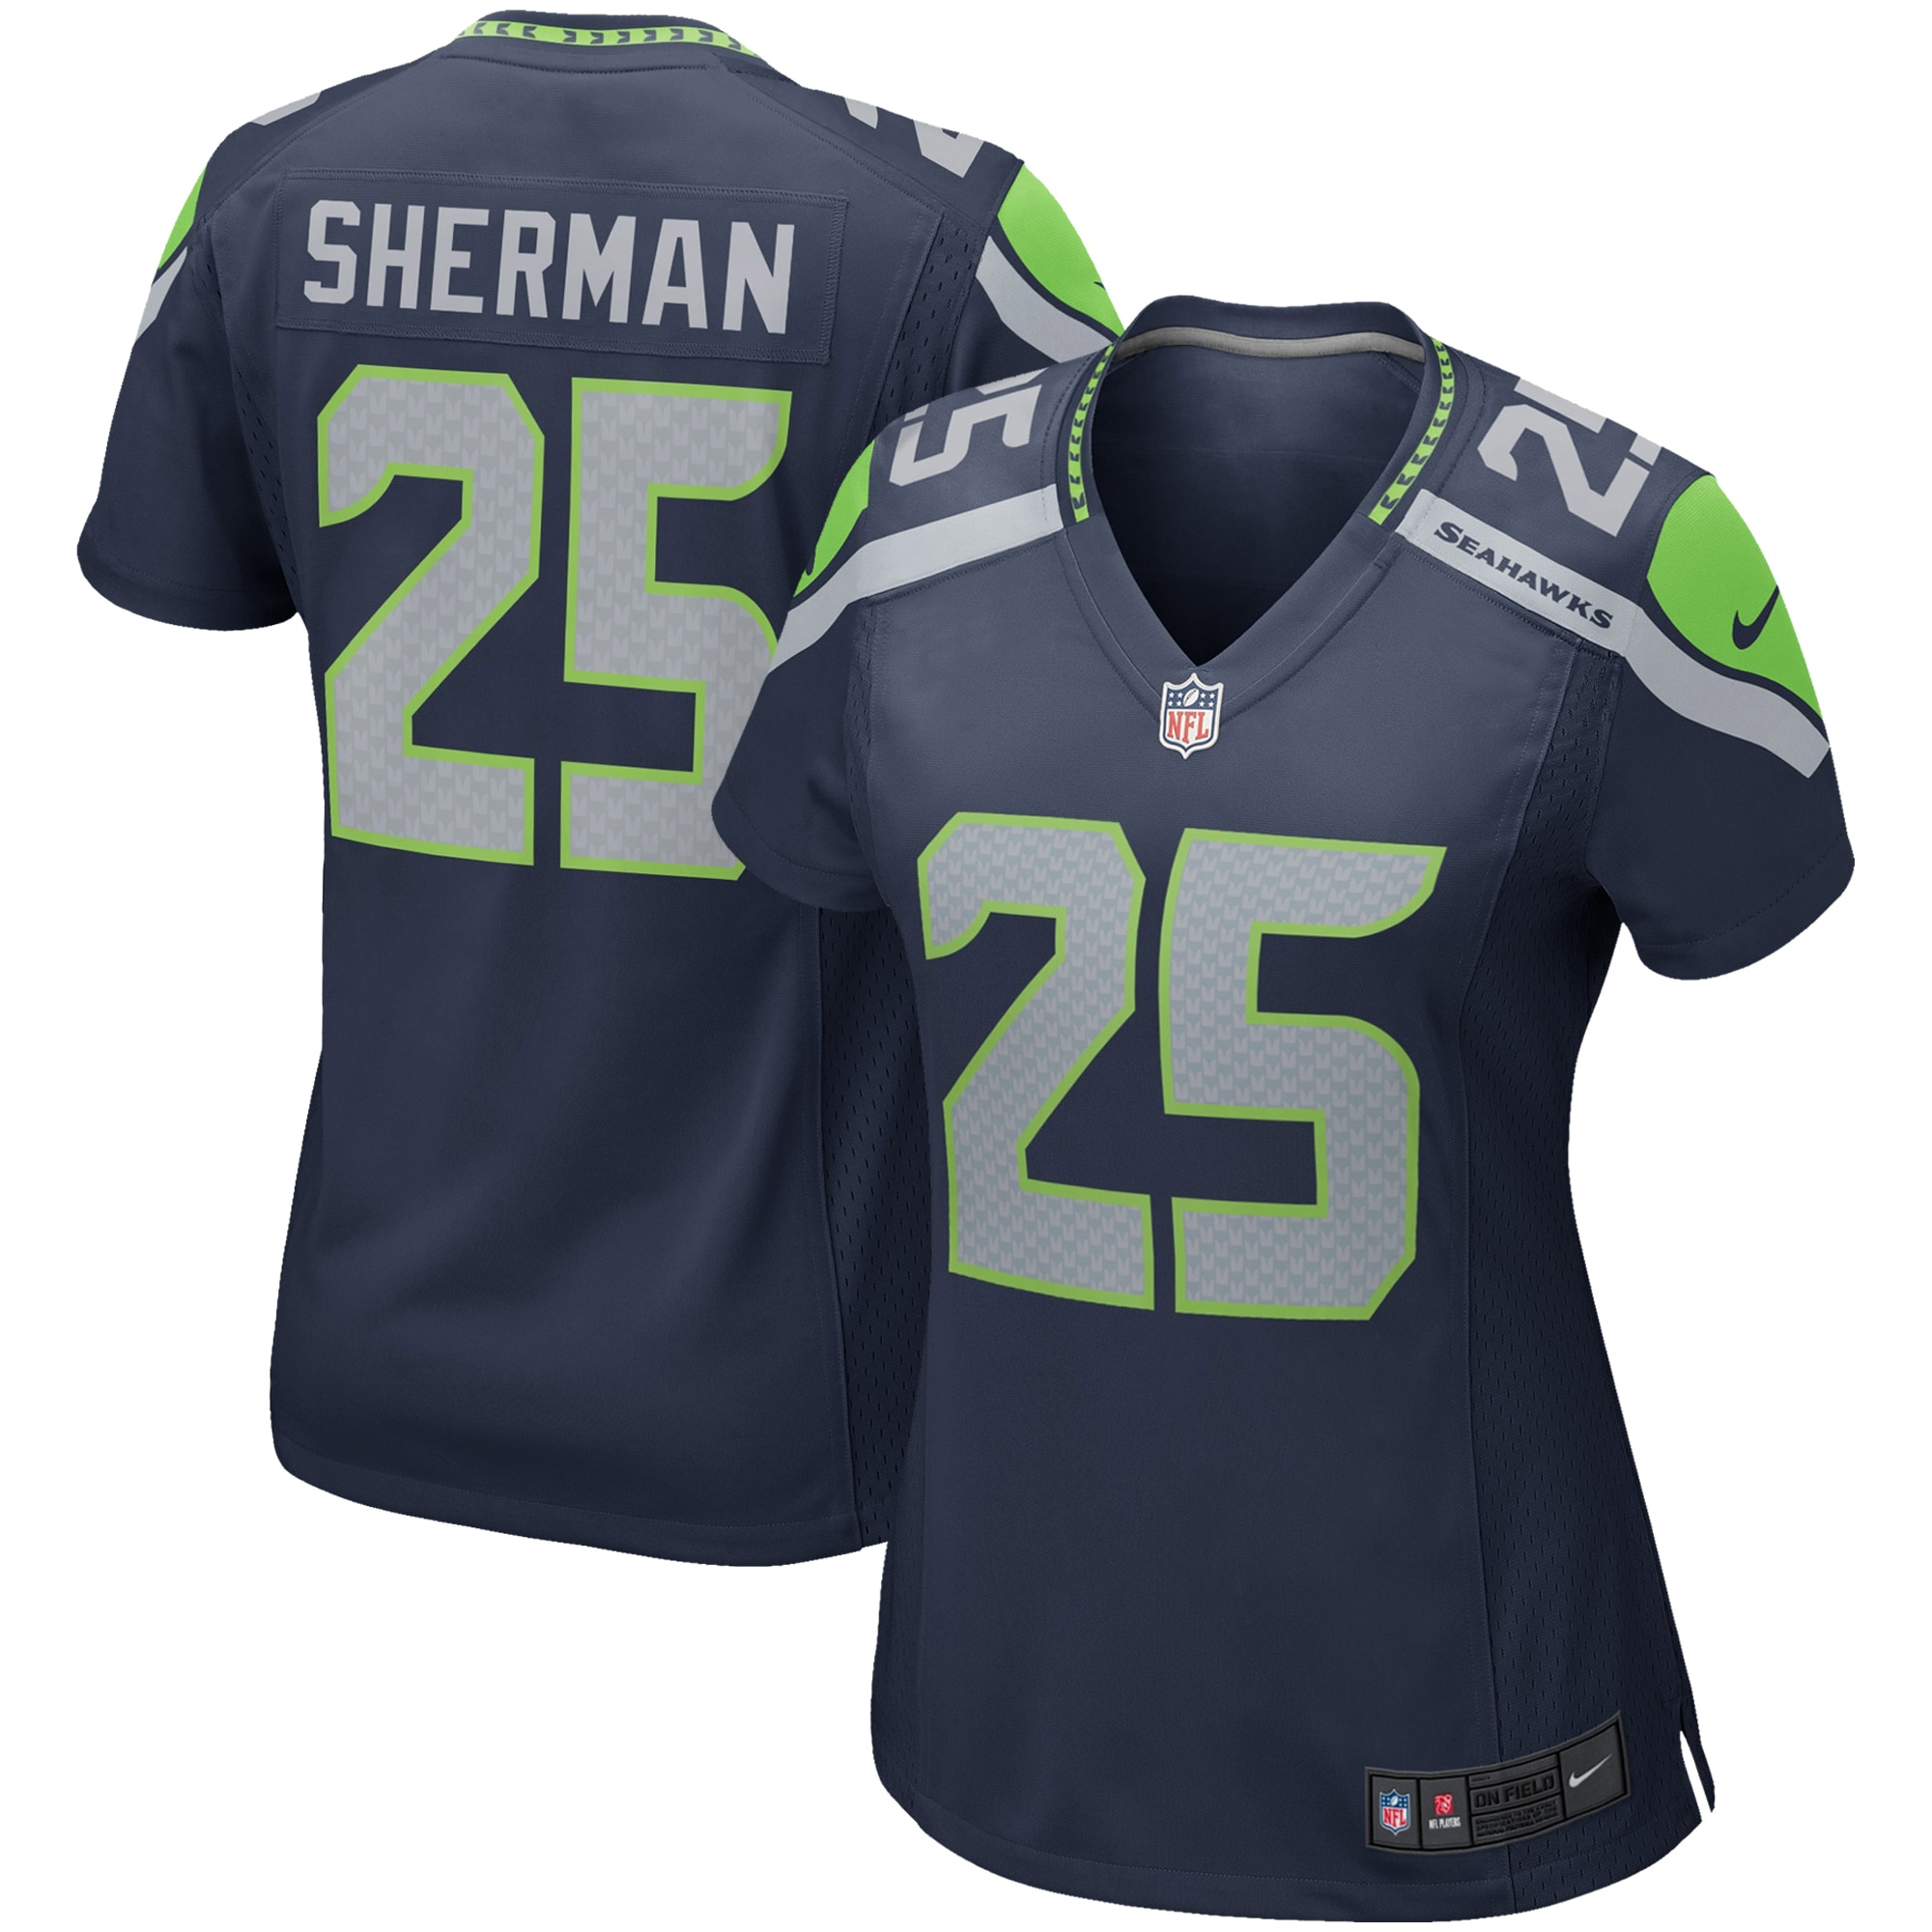 Richard Sherman Seattle Seahawks Nike Girls Youth Replica Game Jersey - College Navy